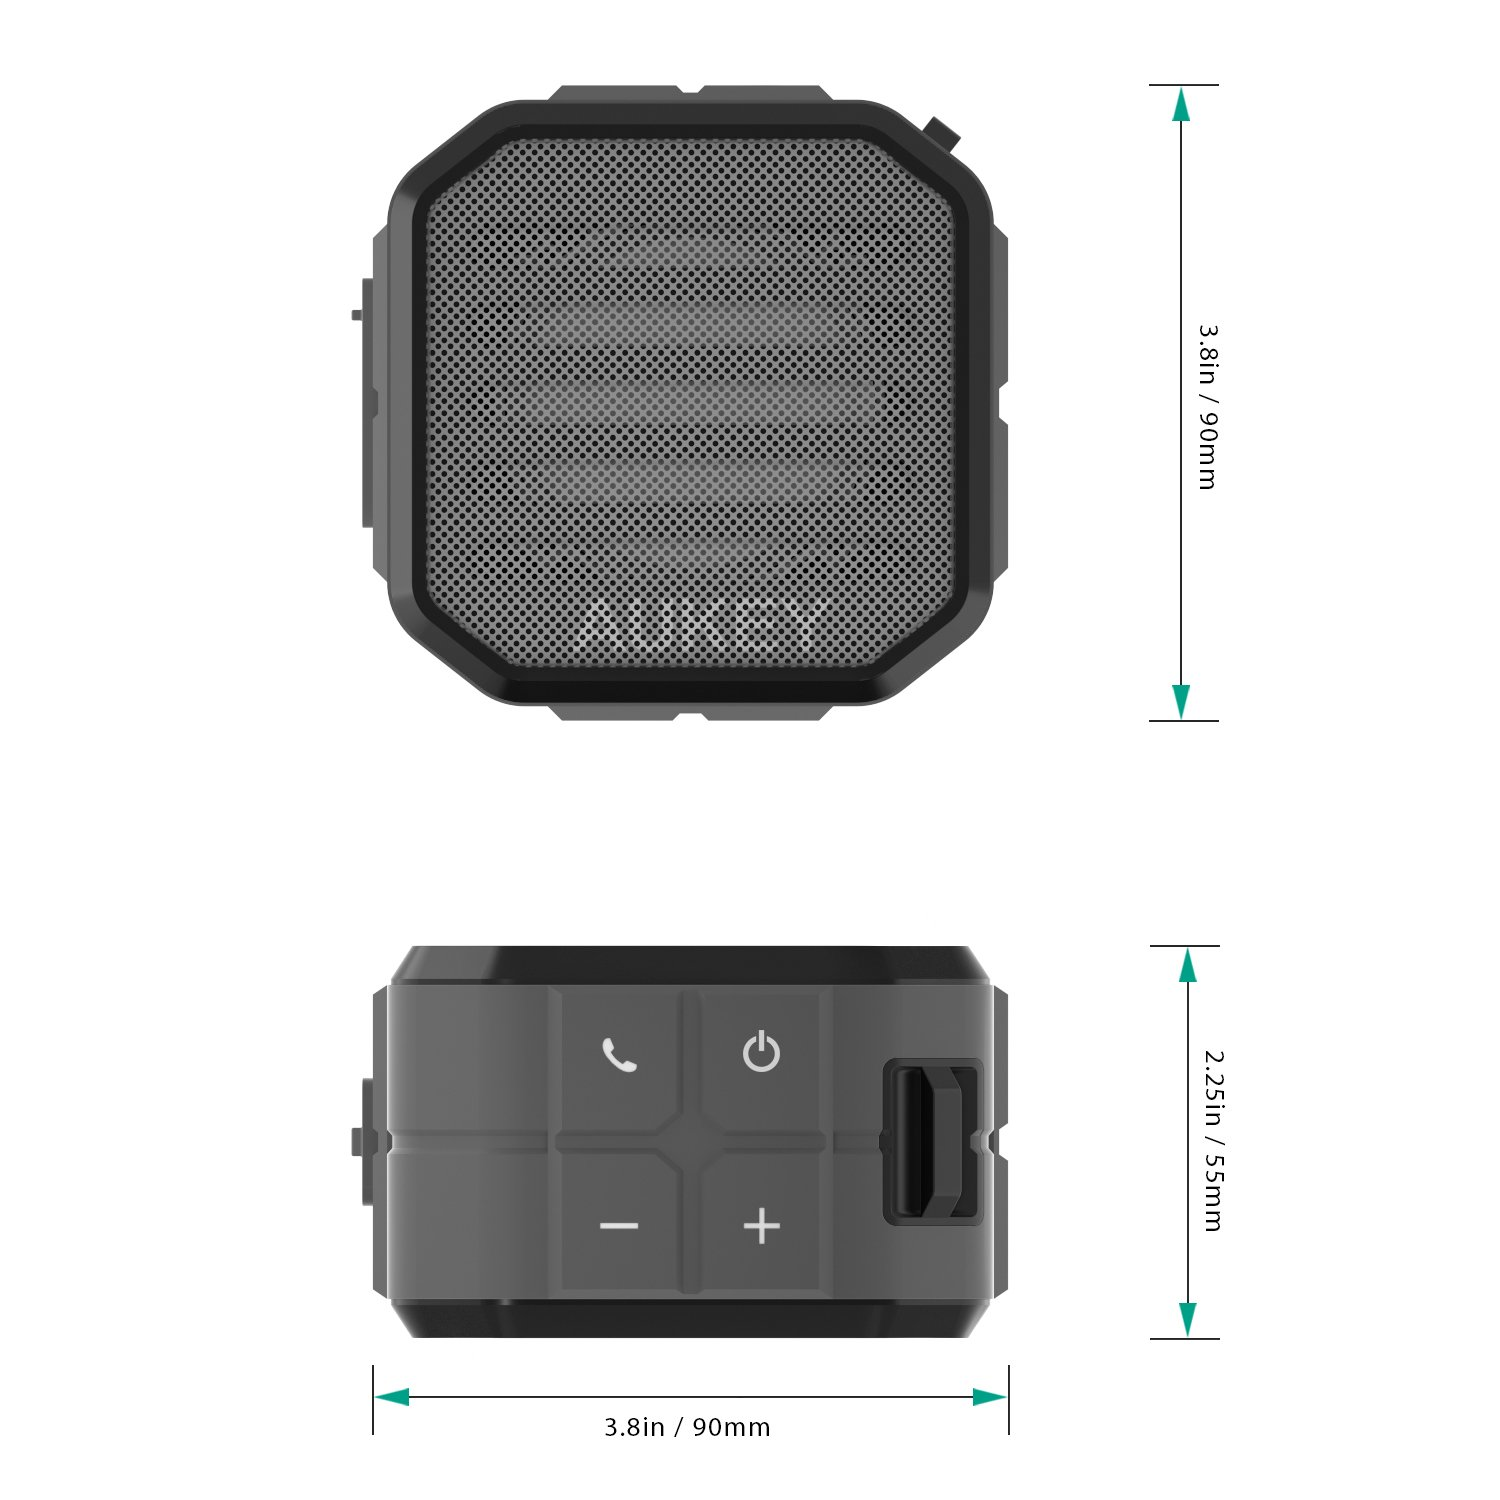 AUKEY Portable Bluetooth Speakers with Enhanced Bass and Built in Mic Outdoor Wireless Speaker Water Resistant for iPhone, iPad, Samsung by AUKEY (Image #6)